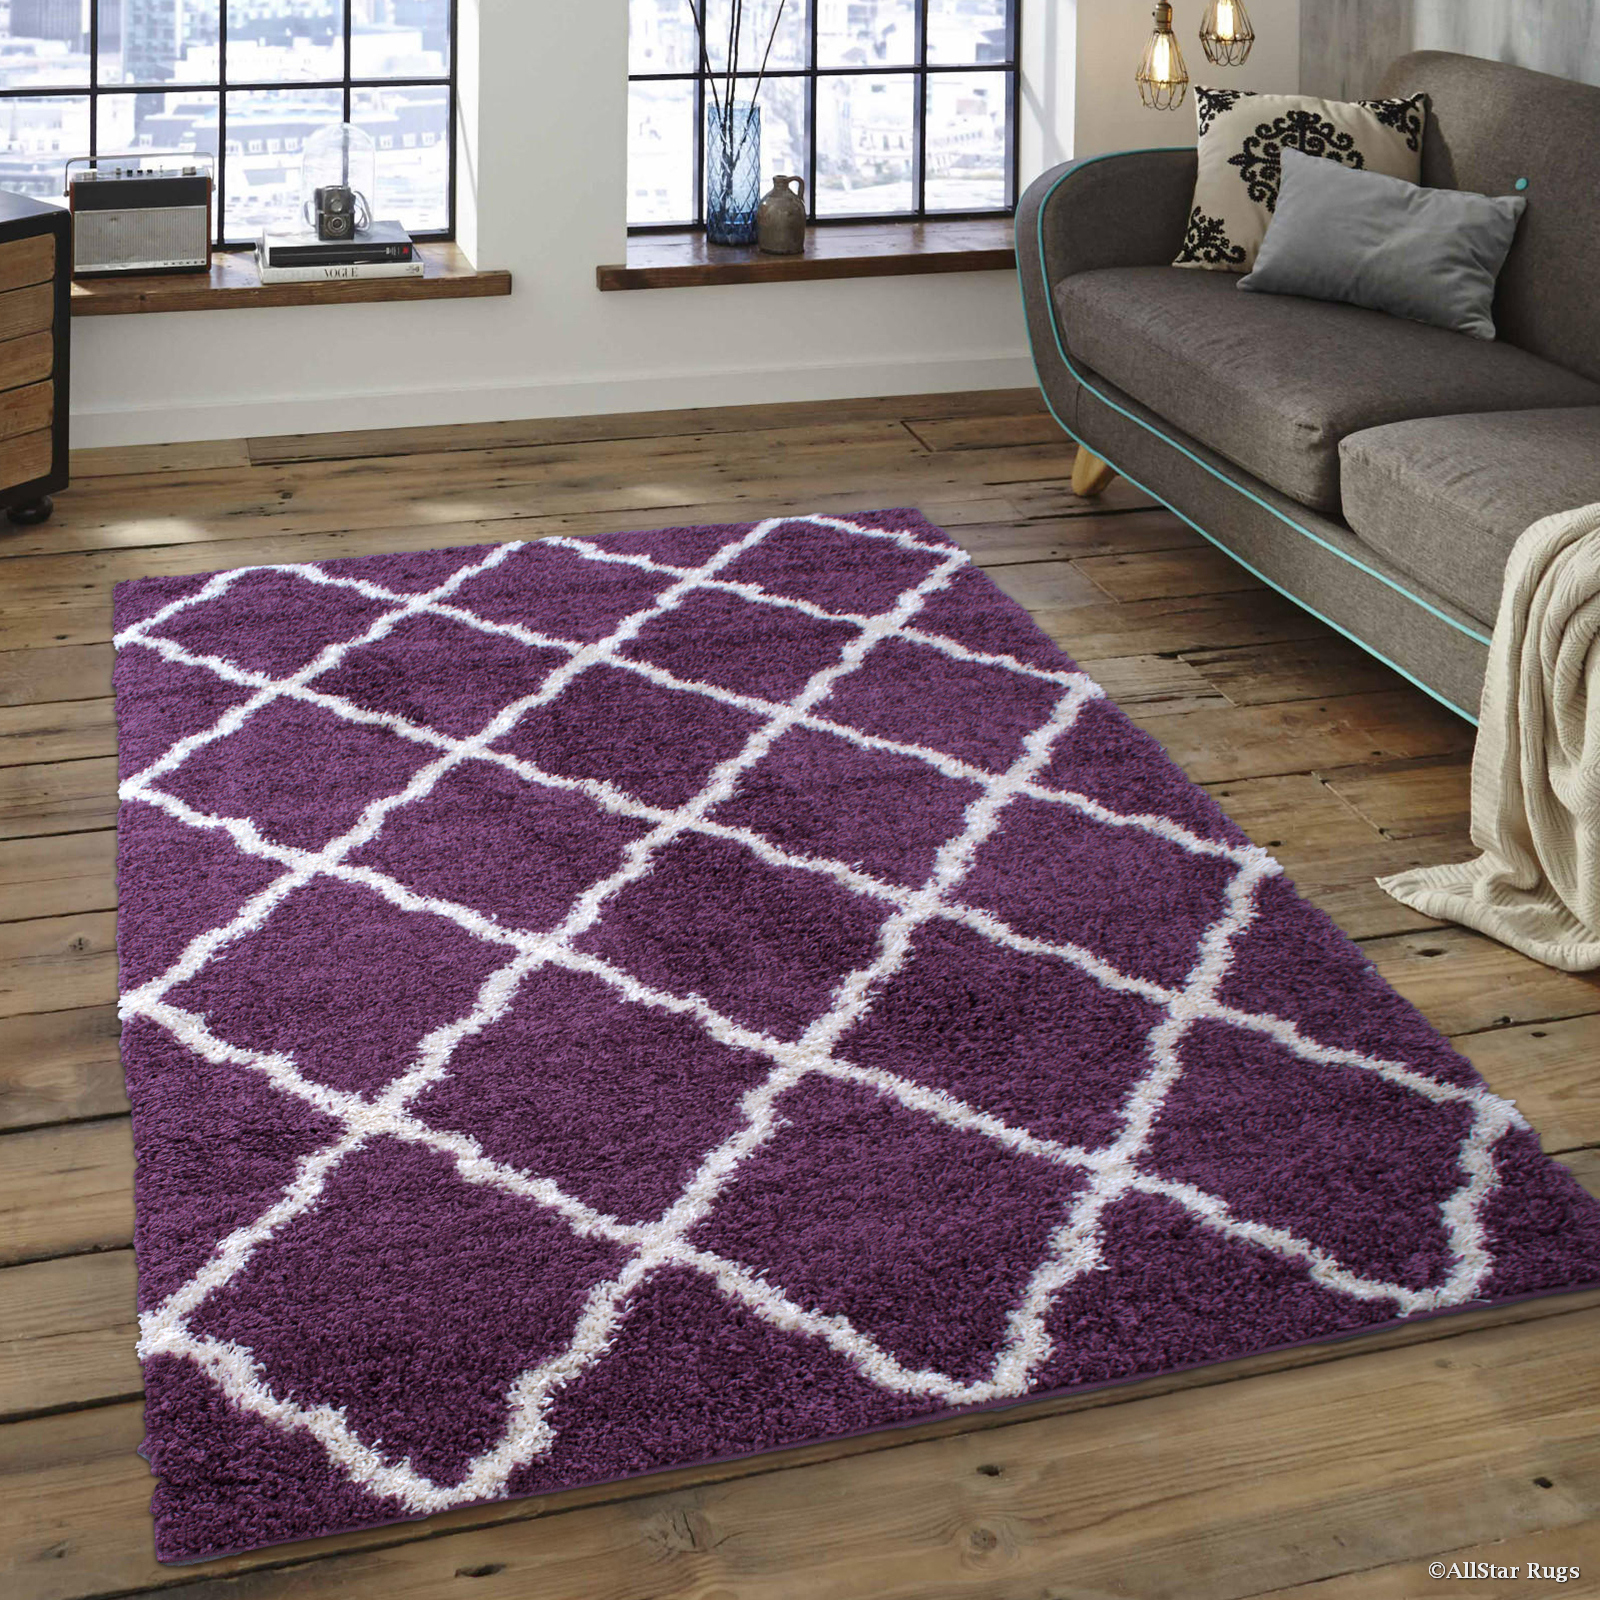 allstar modern purple high pile posh shaggy trellis patterned area rug 5u0027 0